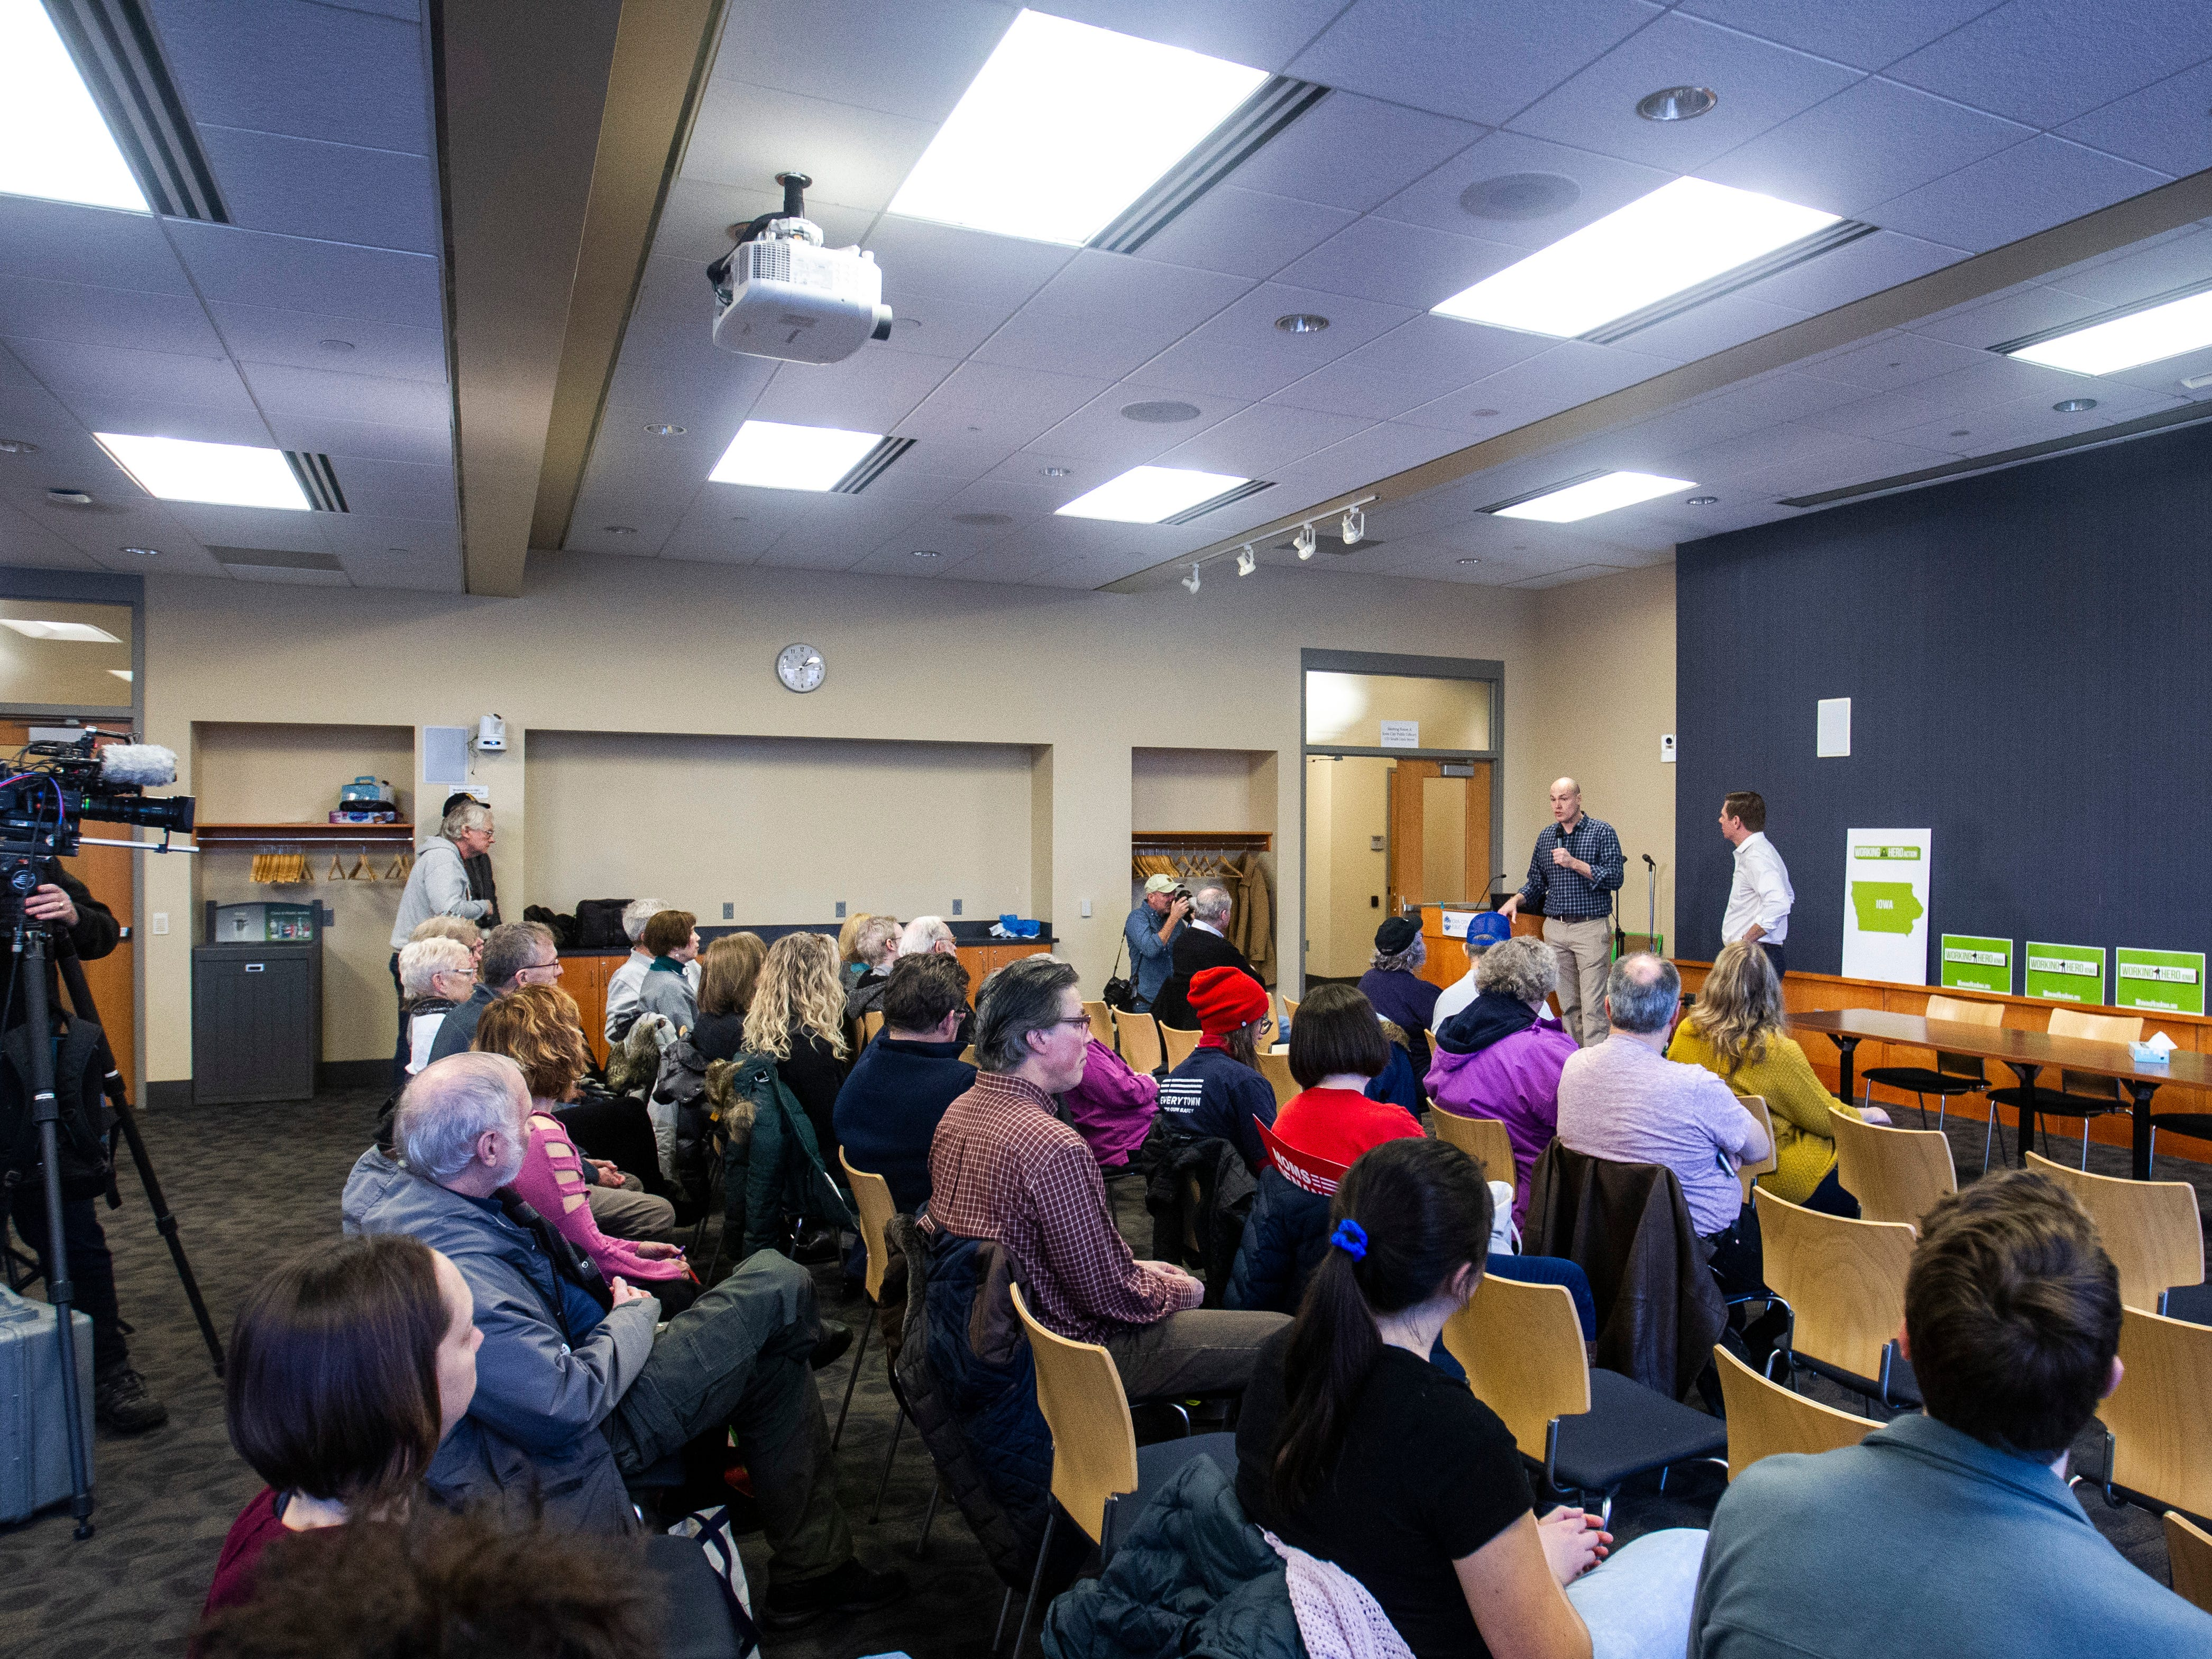 J.D. Scholten, Working Hero Iowa director, (left) introduces U.S. Rep. Eric Swalwell, D-Calif., during a Working Hero Iowa event on Monday, Feb. 18, 2019 at the Public Library in Iowa City, Iowa.